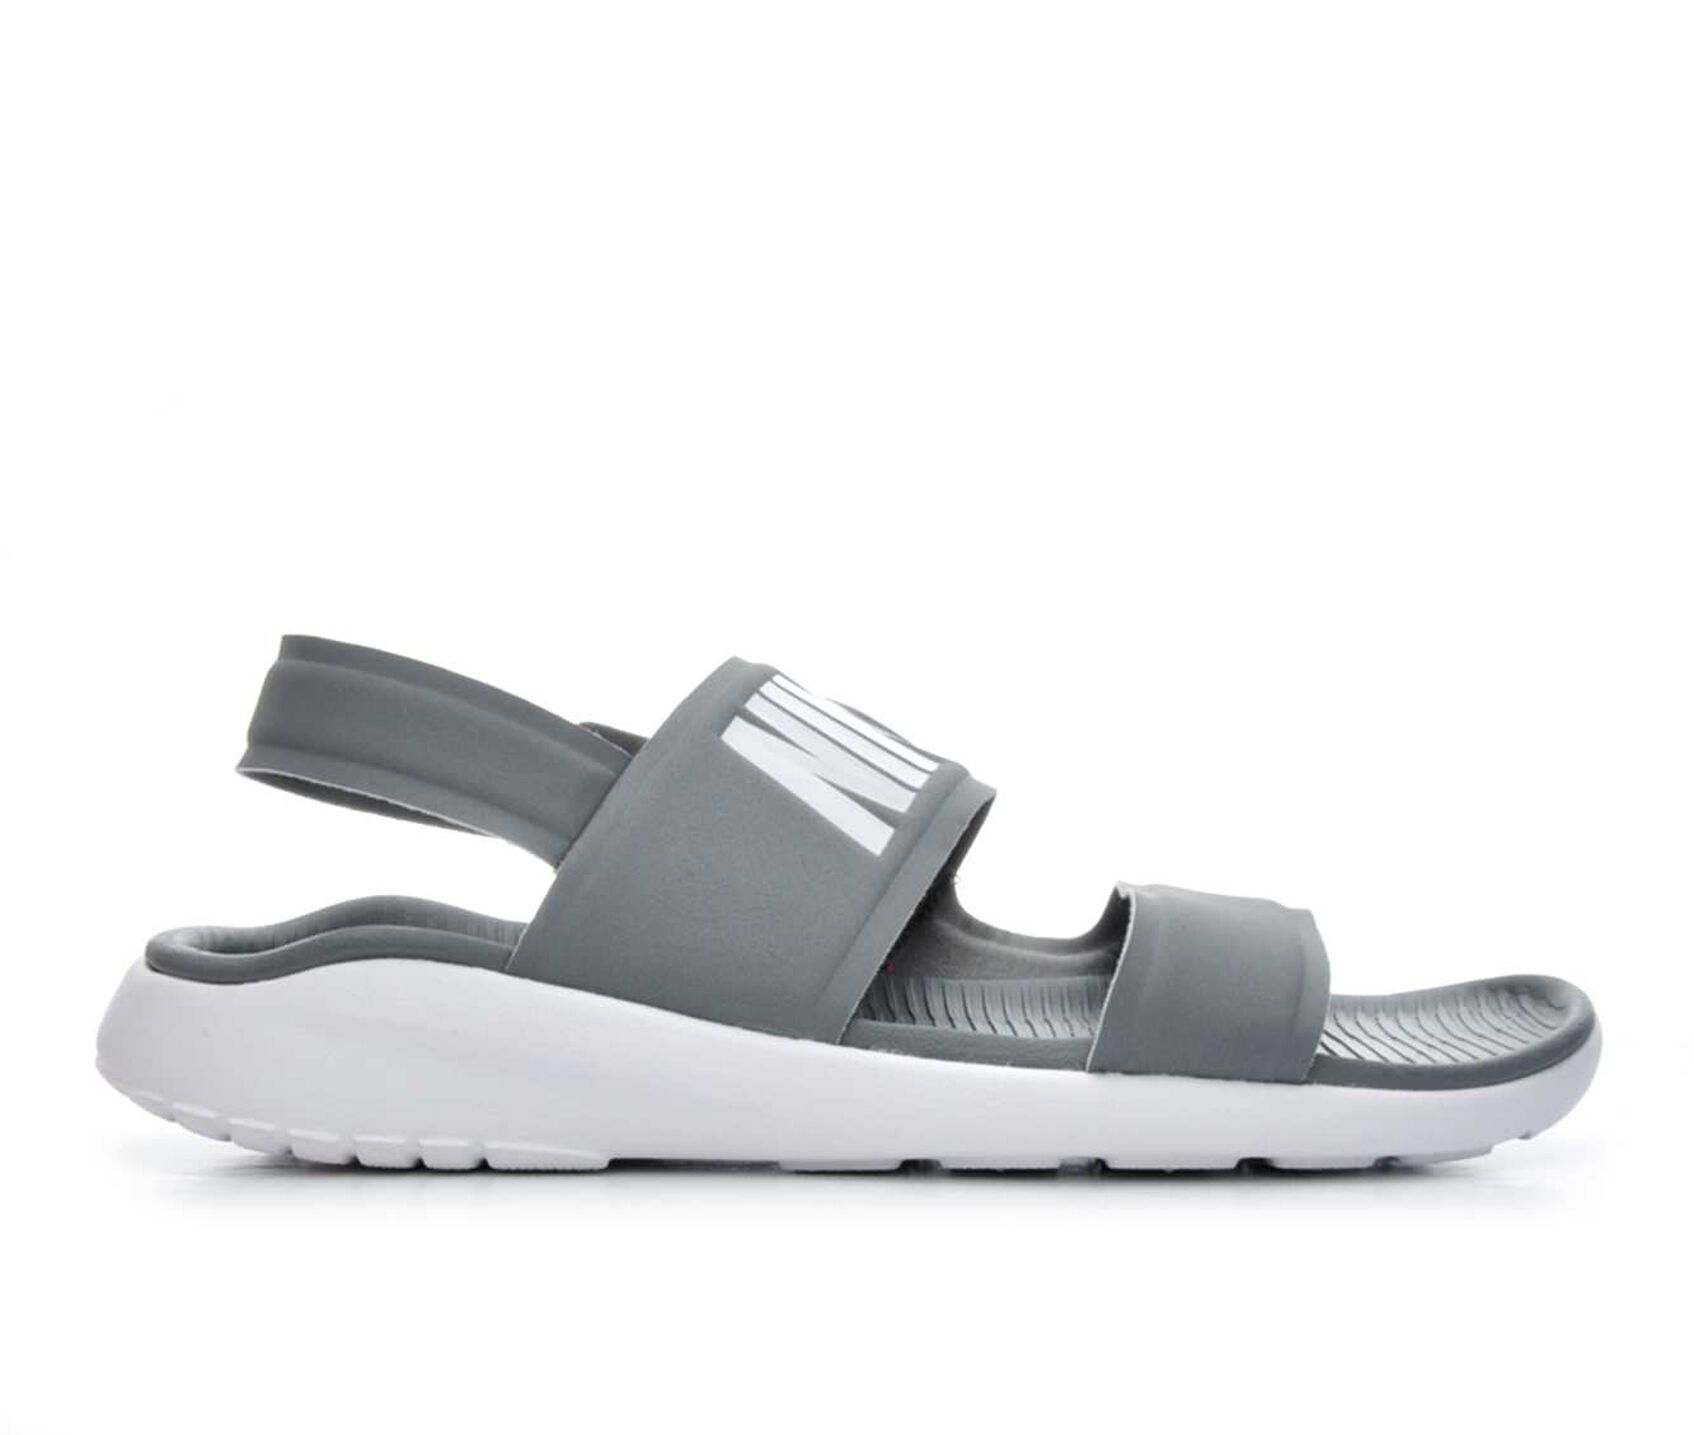 Brilliant Below, We Rounded Up The Best Widewidth Shoes For Womenfrom Cute Sandals And Flats To Athletic Sneakersbacked By Glowing Shopper Reviews